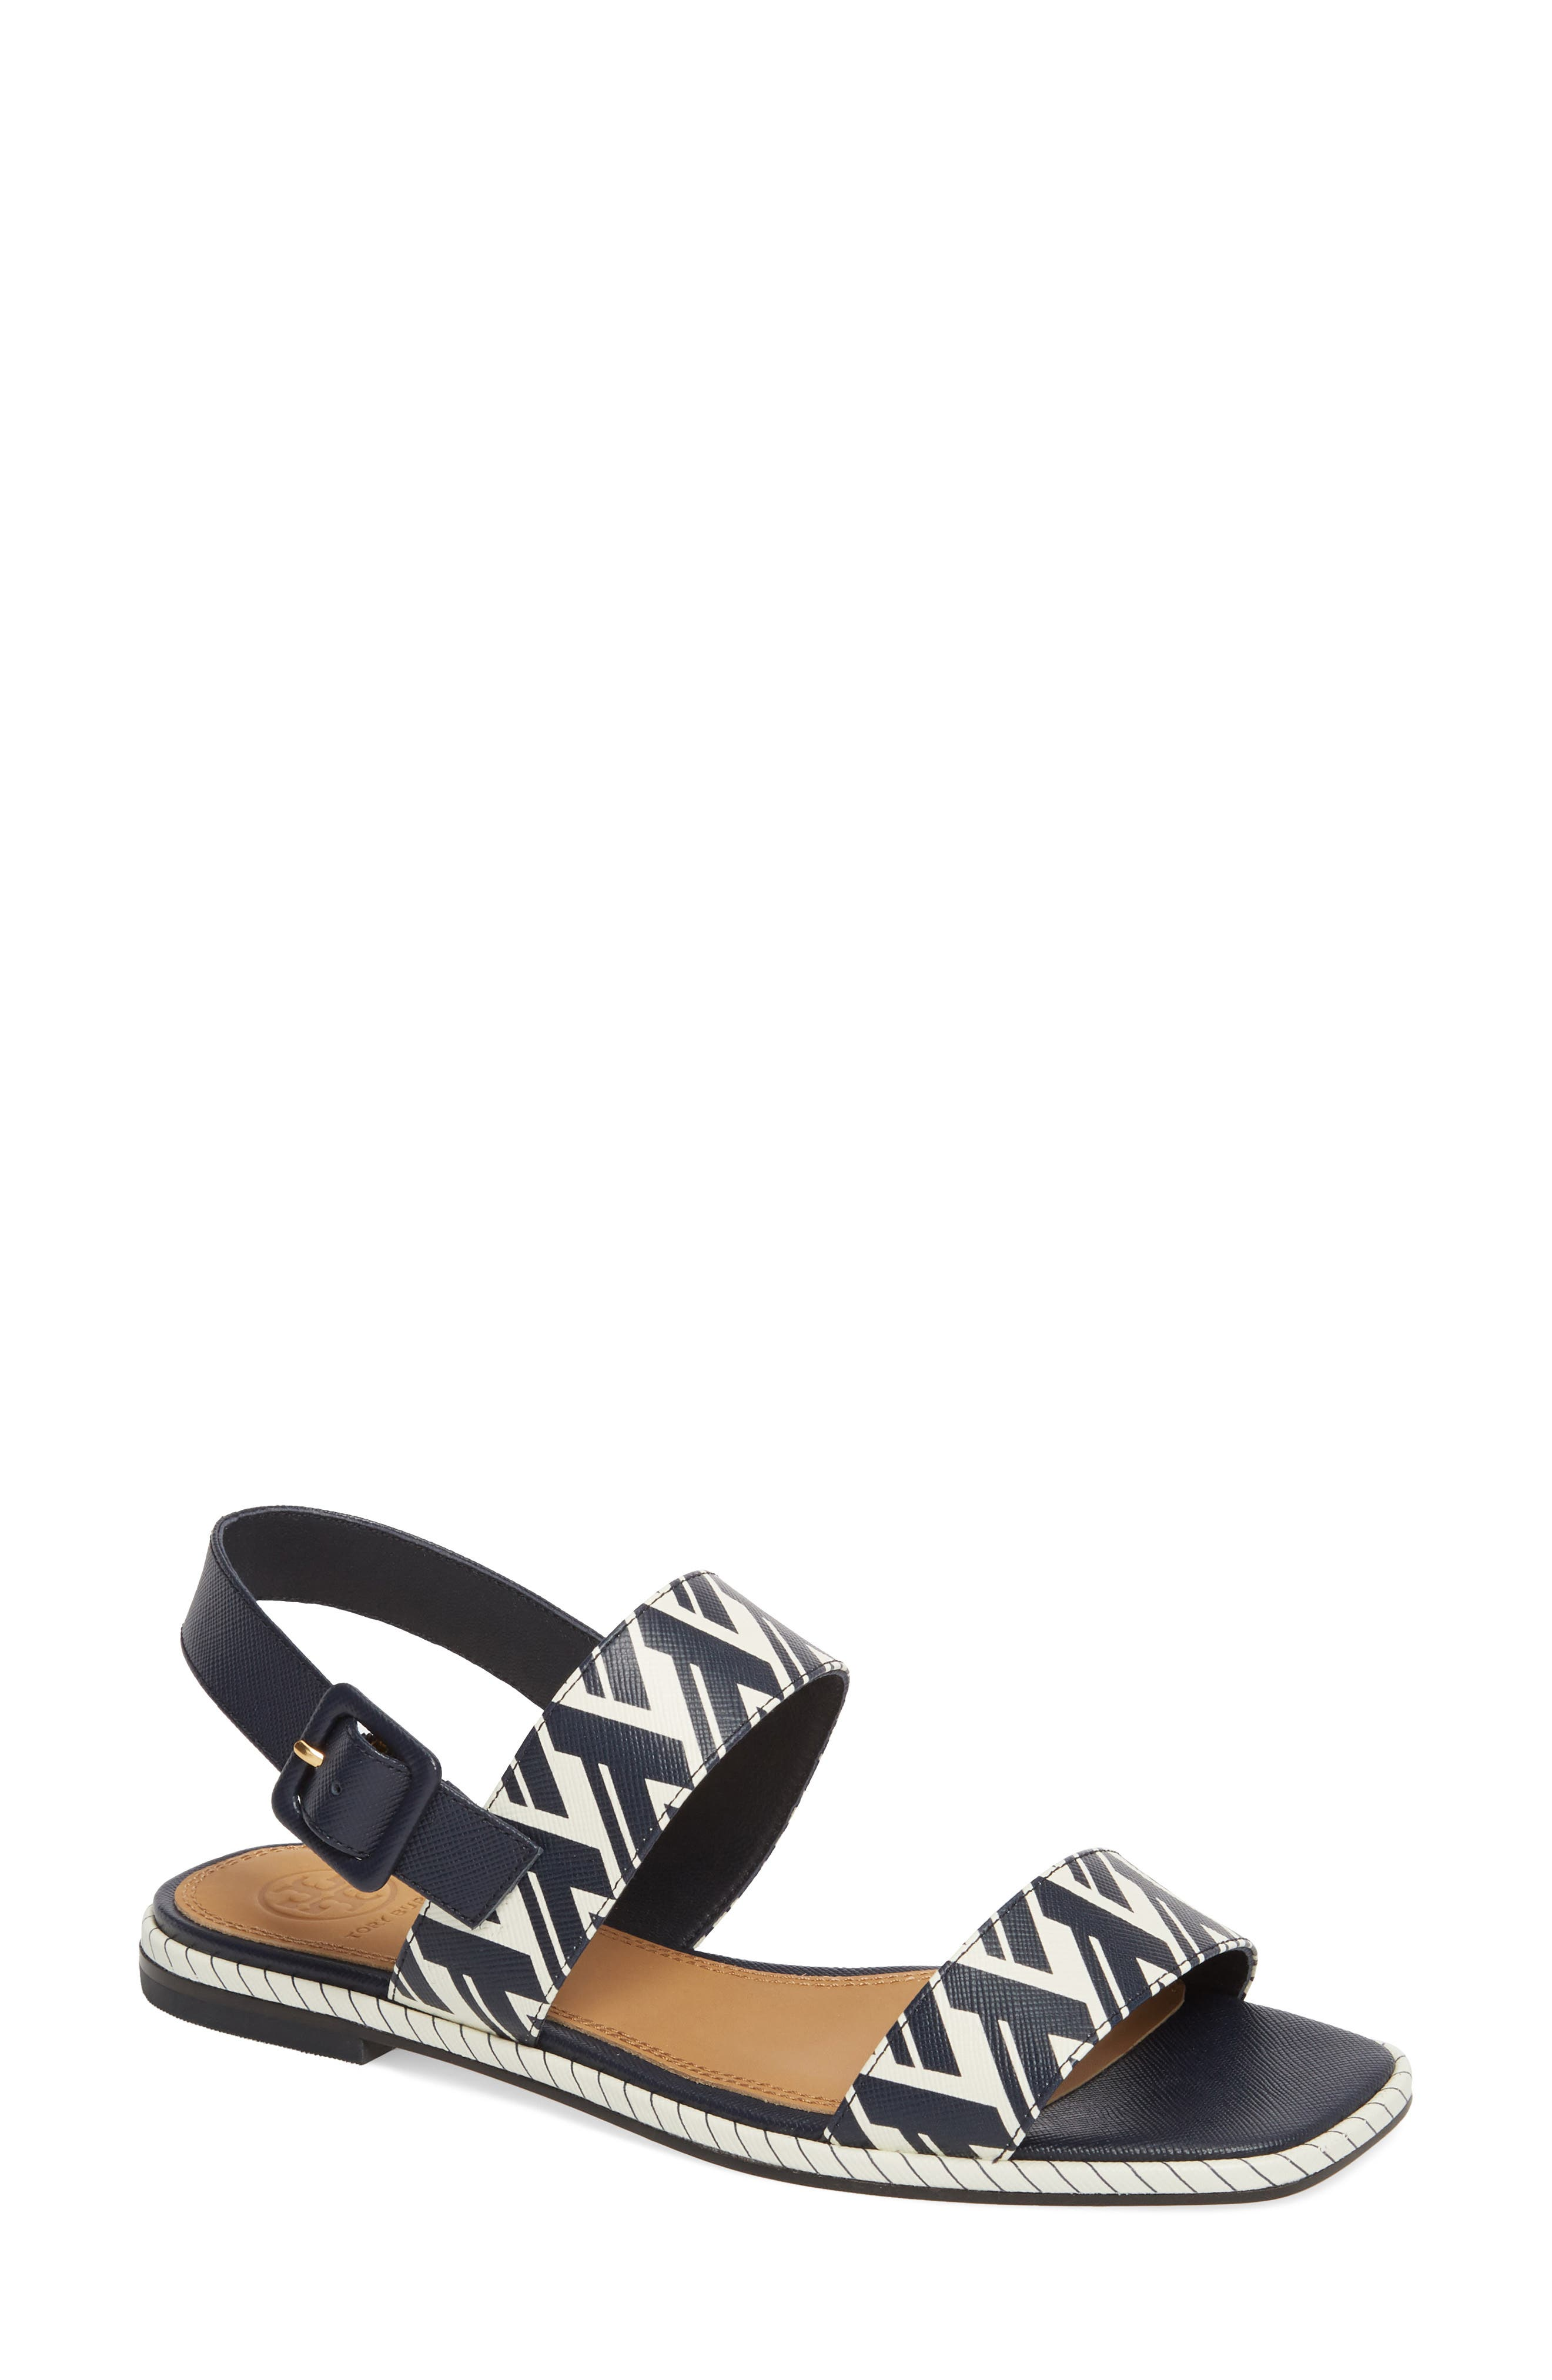 Delaney Double Strap Sandal,                             Main thumbnail 3, color,